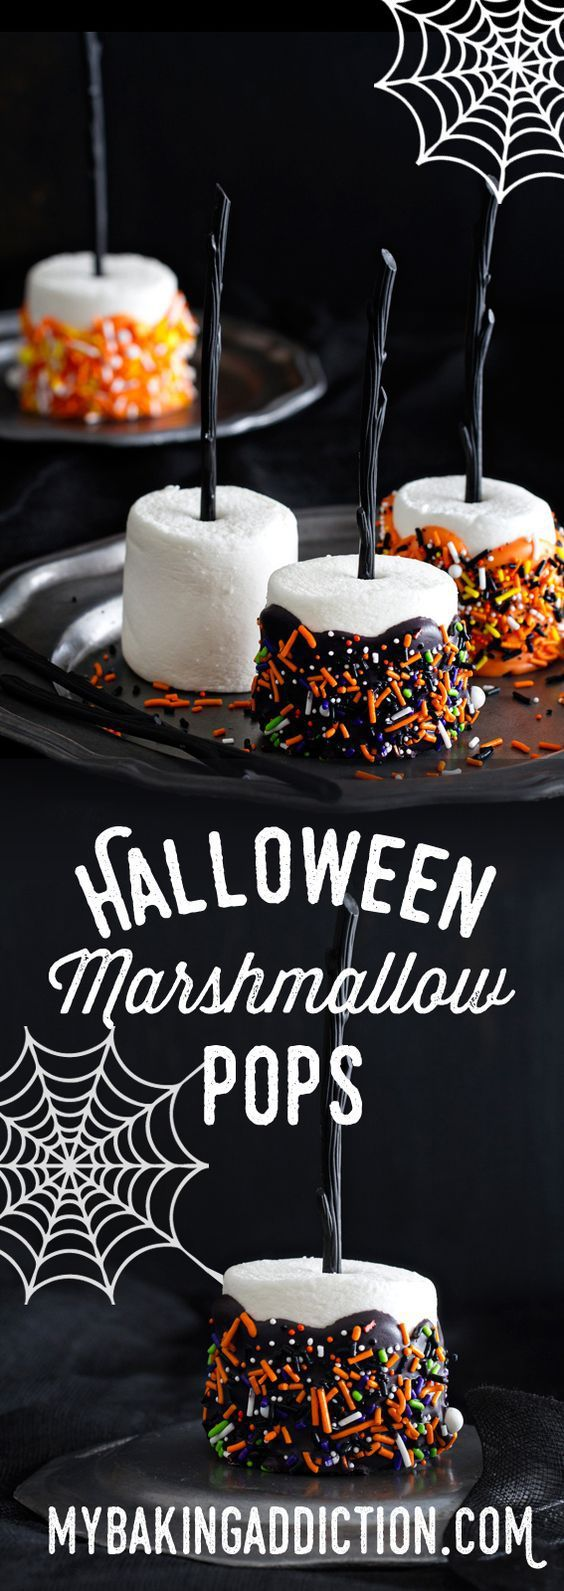 Halloween Party Treats Appetizers and Desserts Recipes - Halloween Marshmallow Pops Handheld Treats Recipe via My Baking Addiction